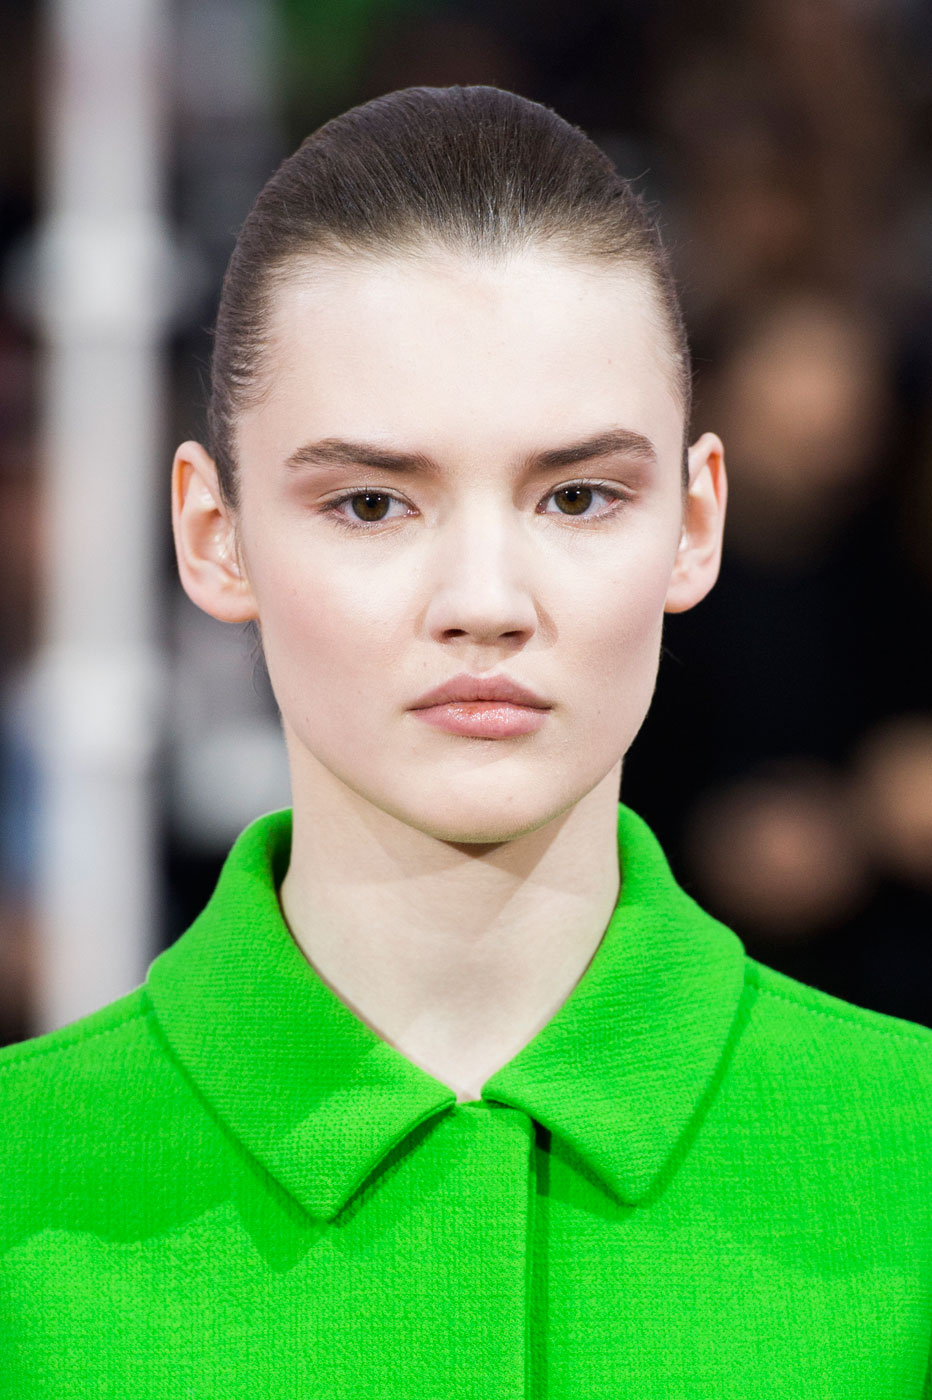 Christian-Dior-fashion-runway-show-close-ups-haute-couture-paris-spring-summer-2015-the-impression-186